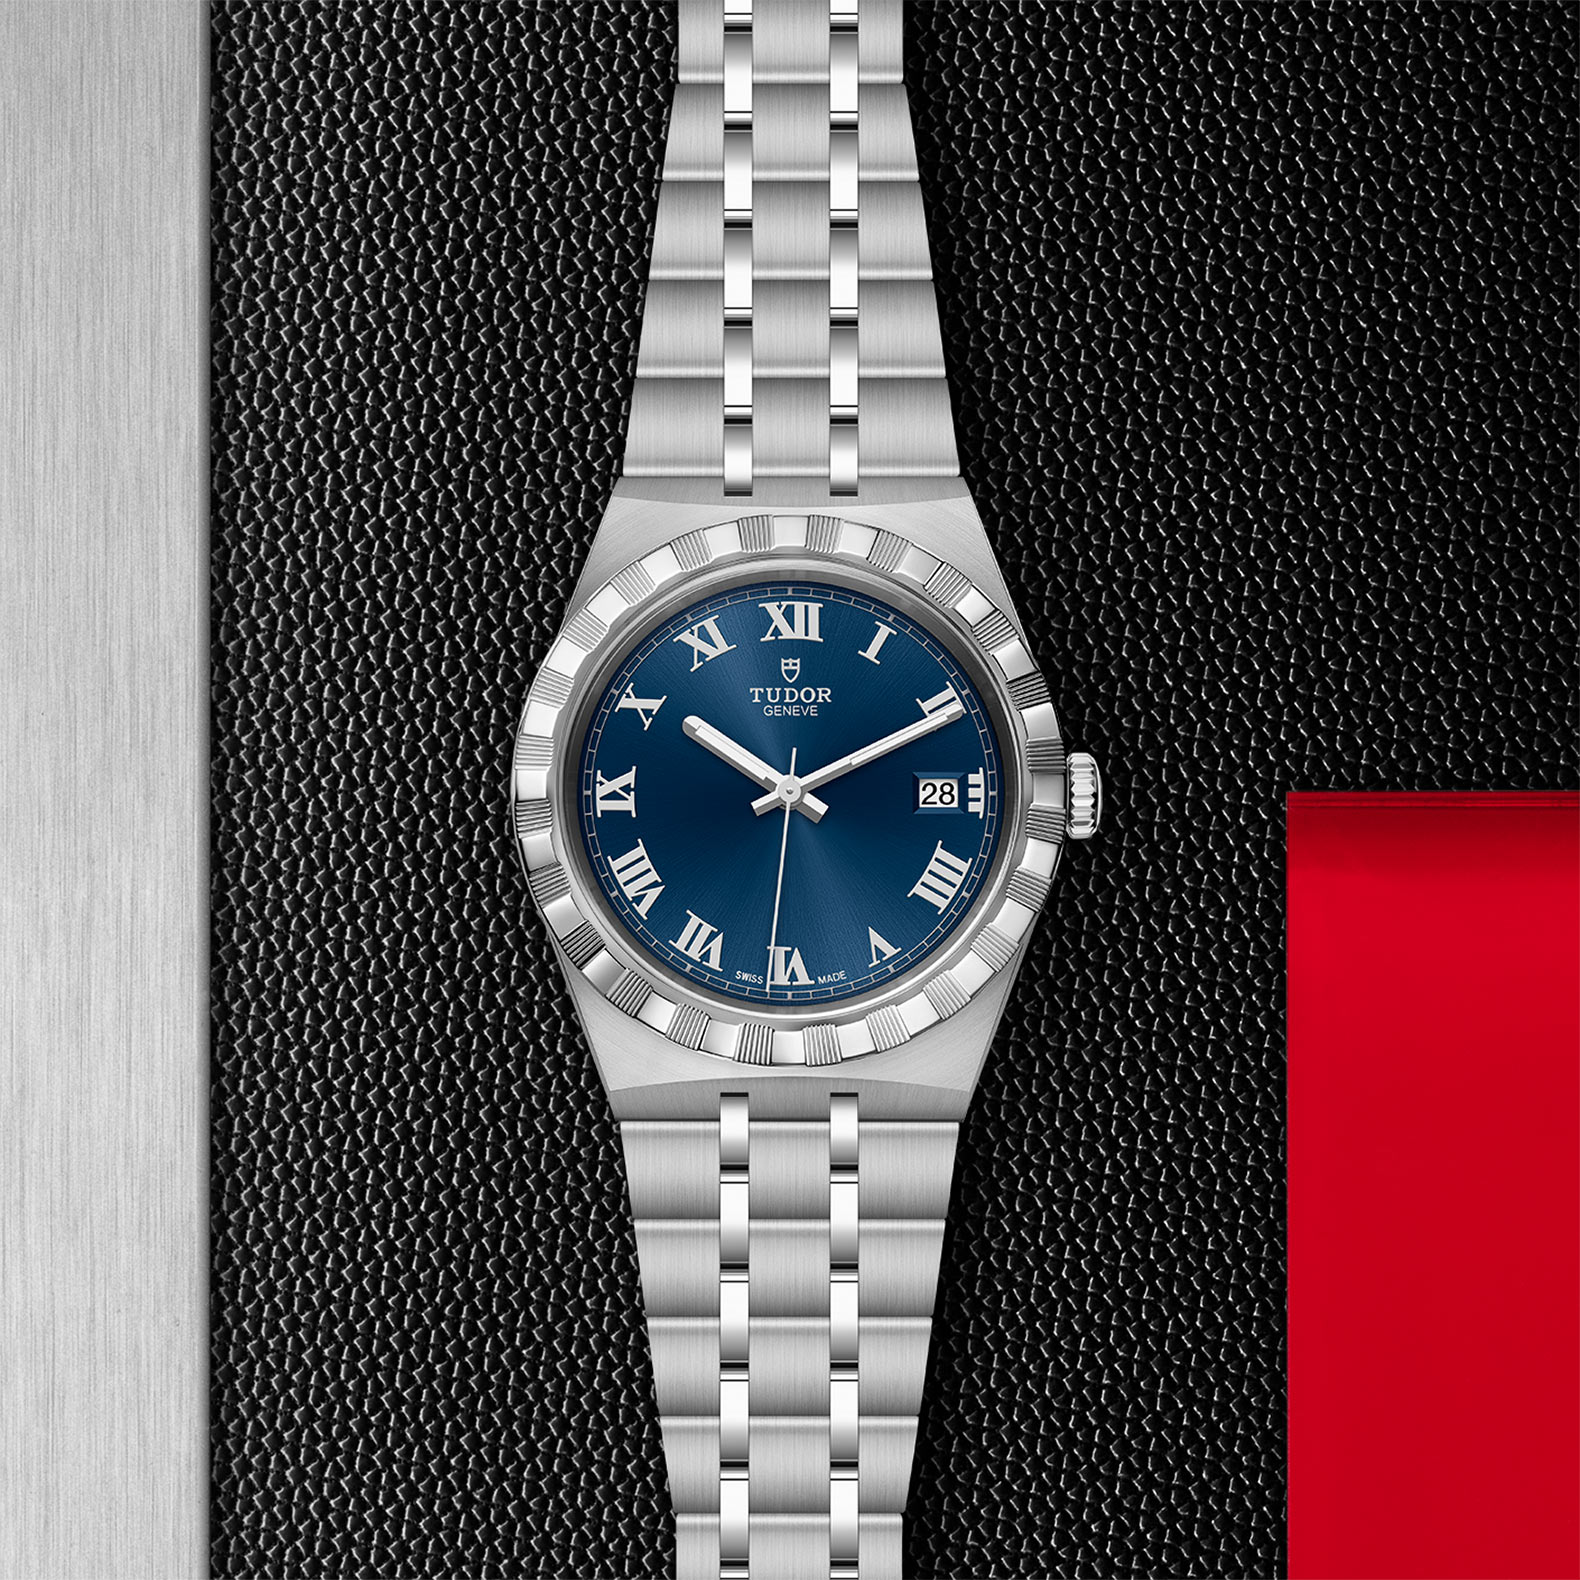 Tudor Royal M28500-0005